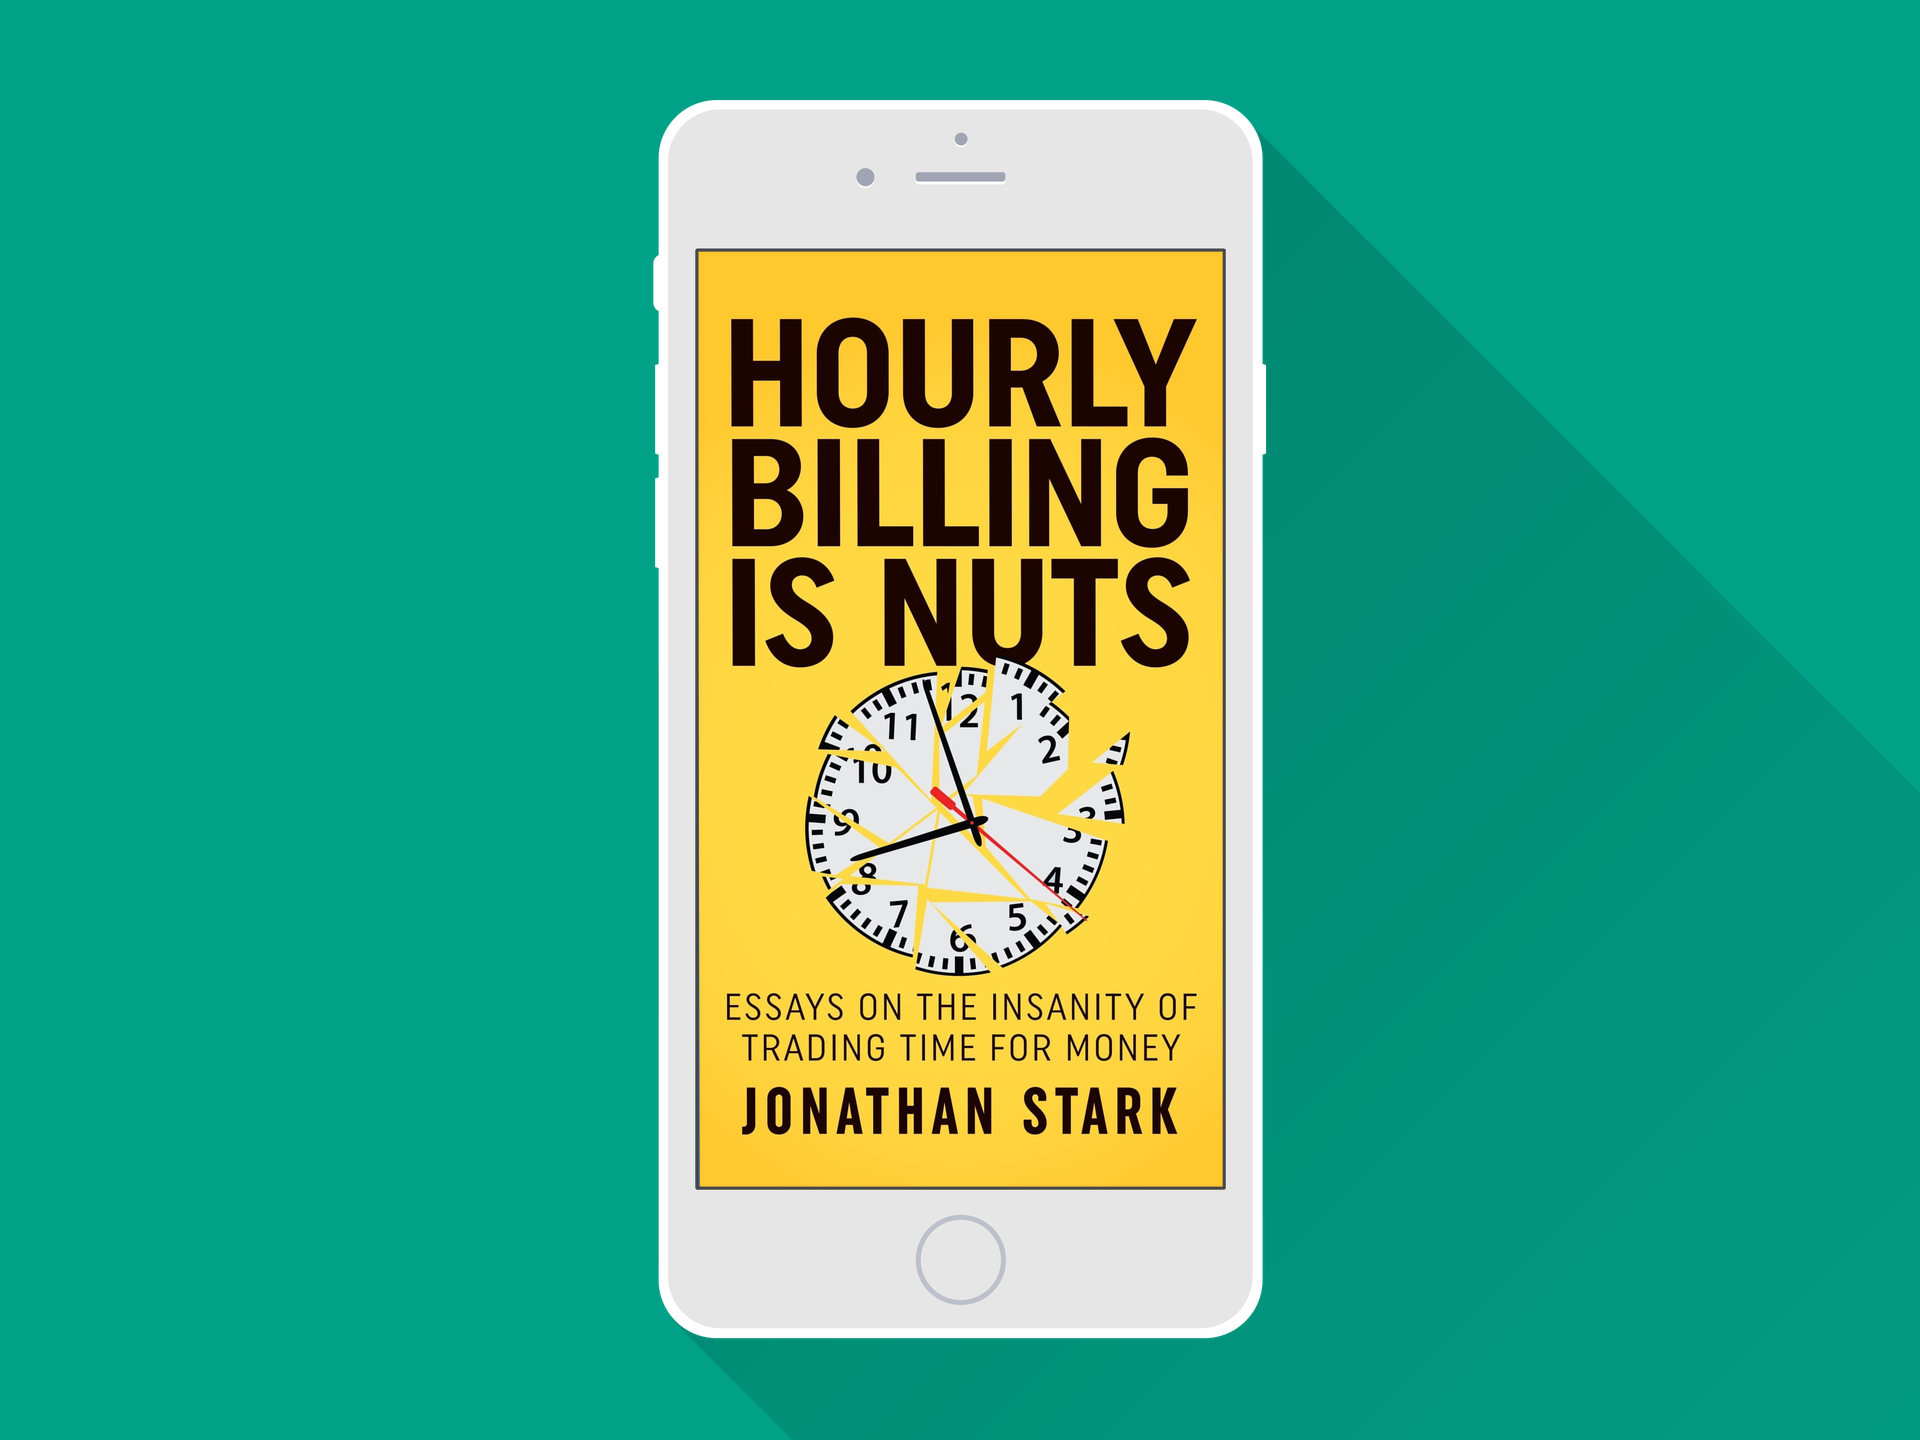 Hourly Billing Is Nuts book cover